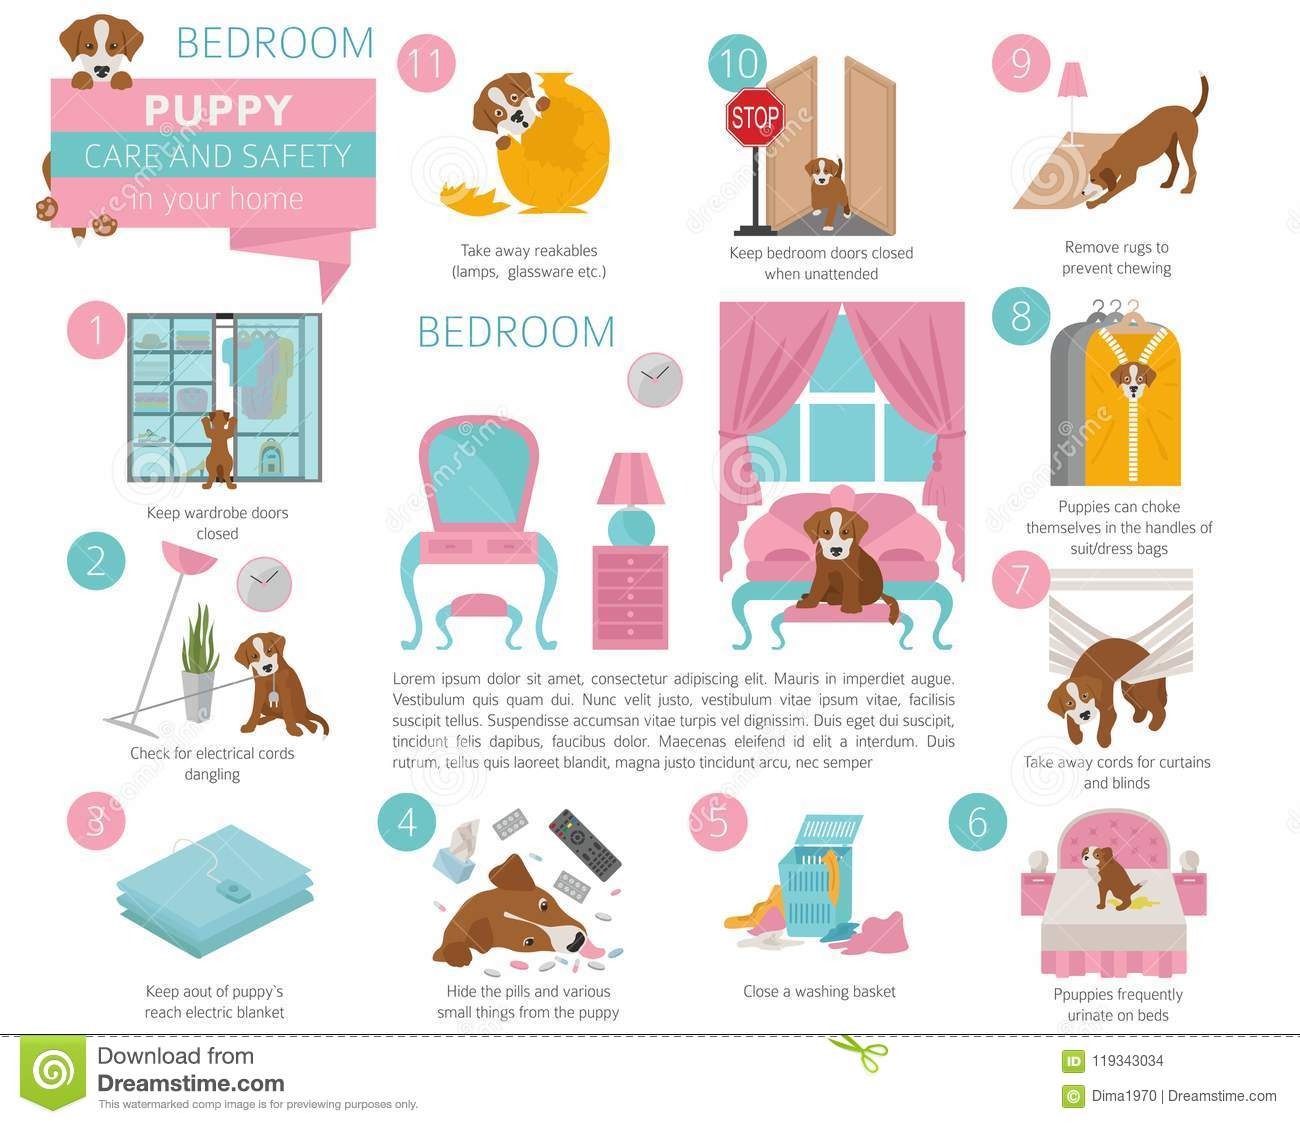 Puppy care and safety in your home. Bedroom. Pet dog training in